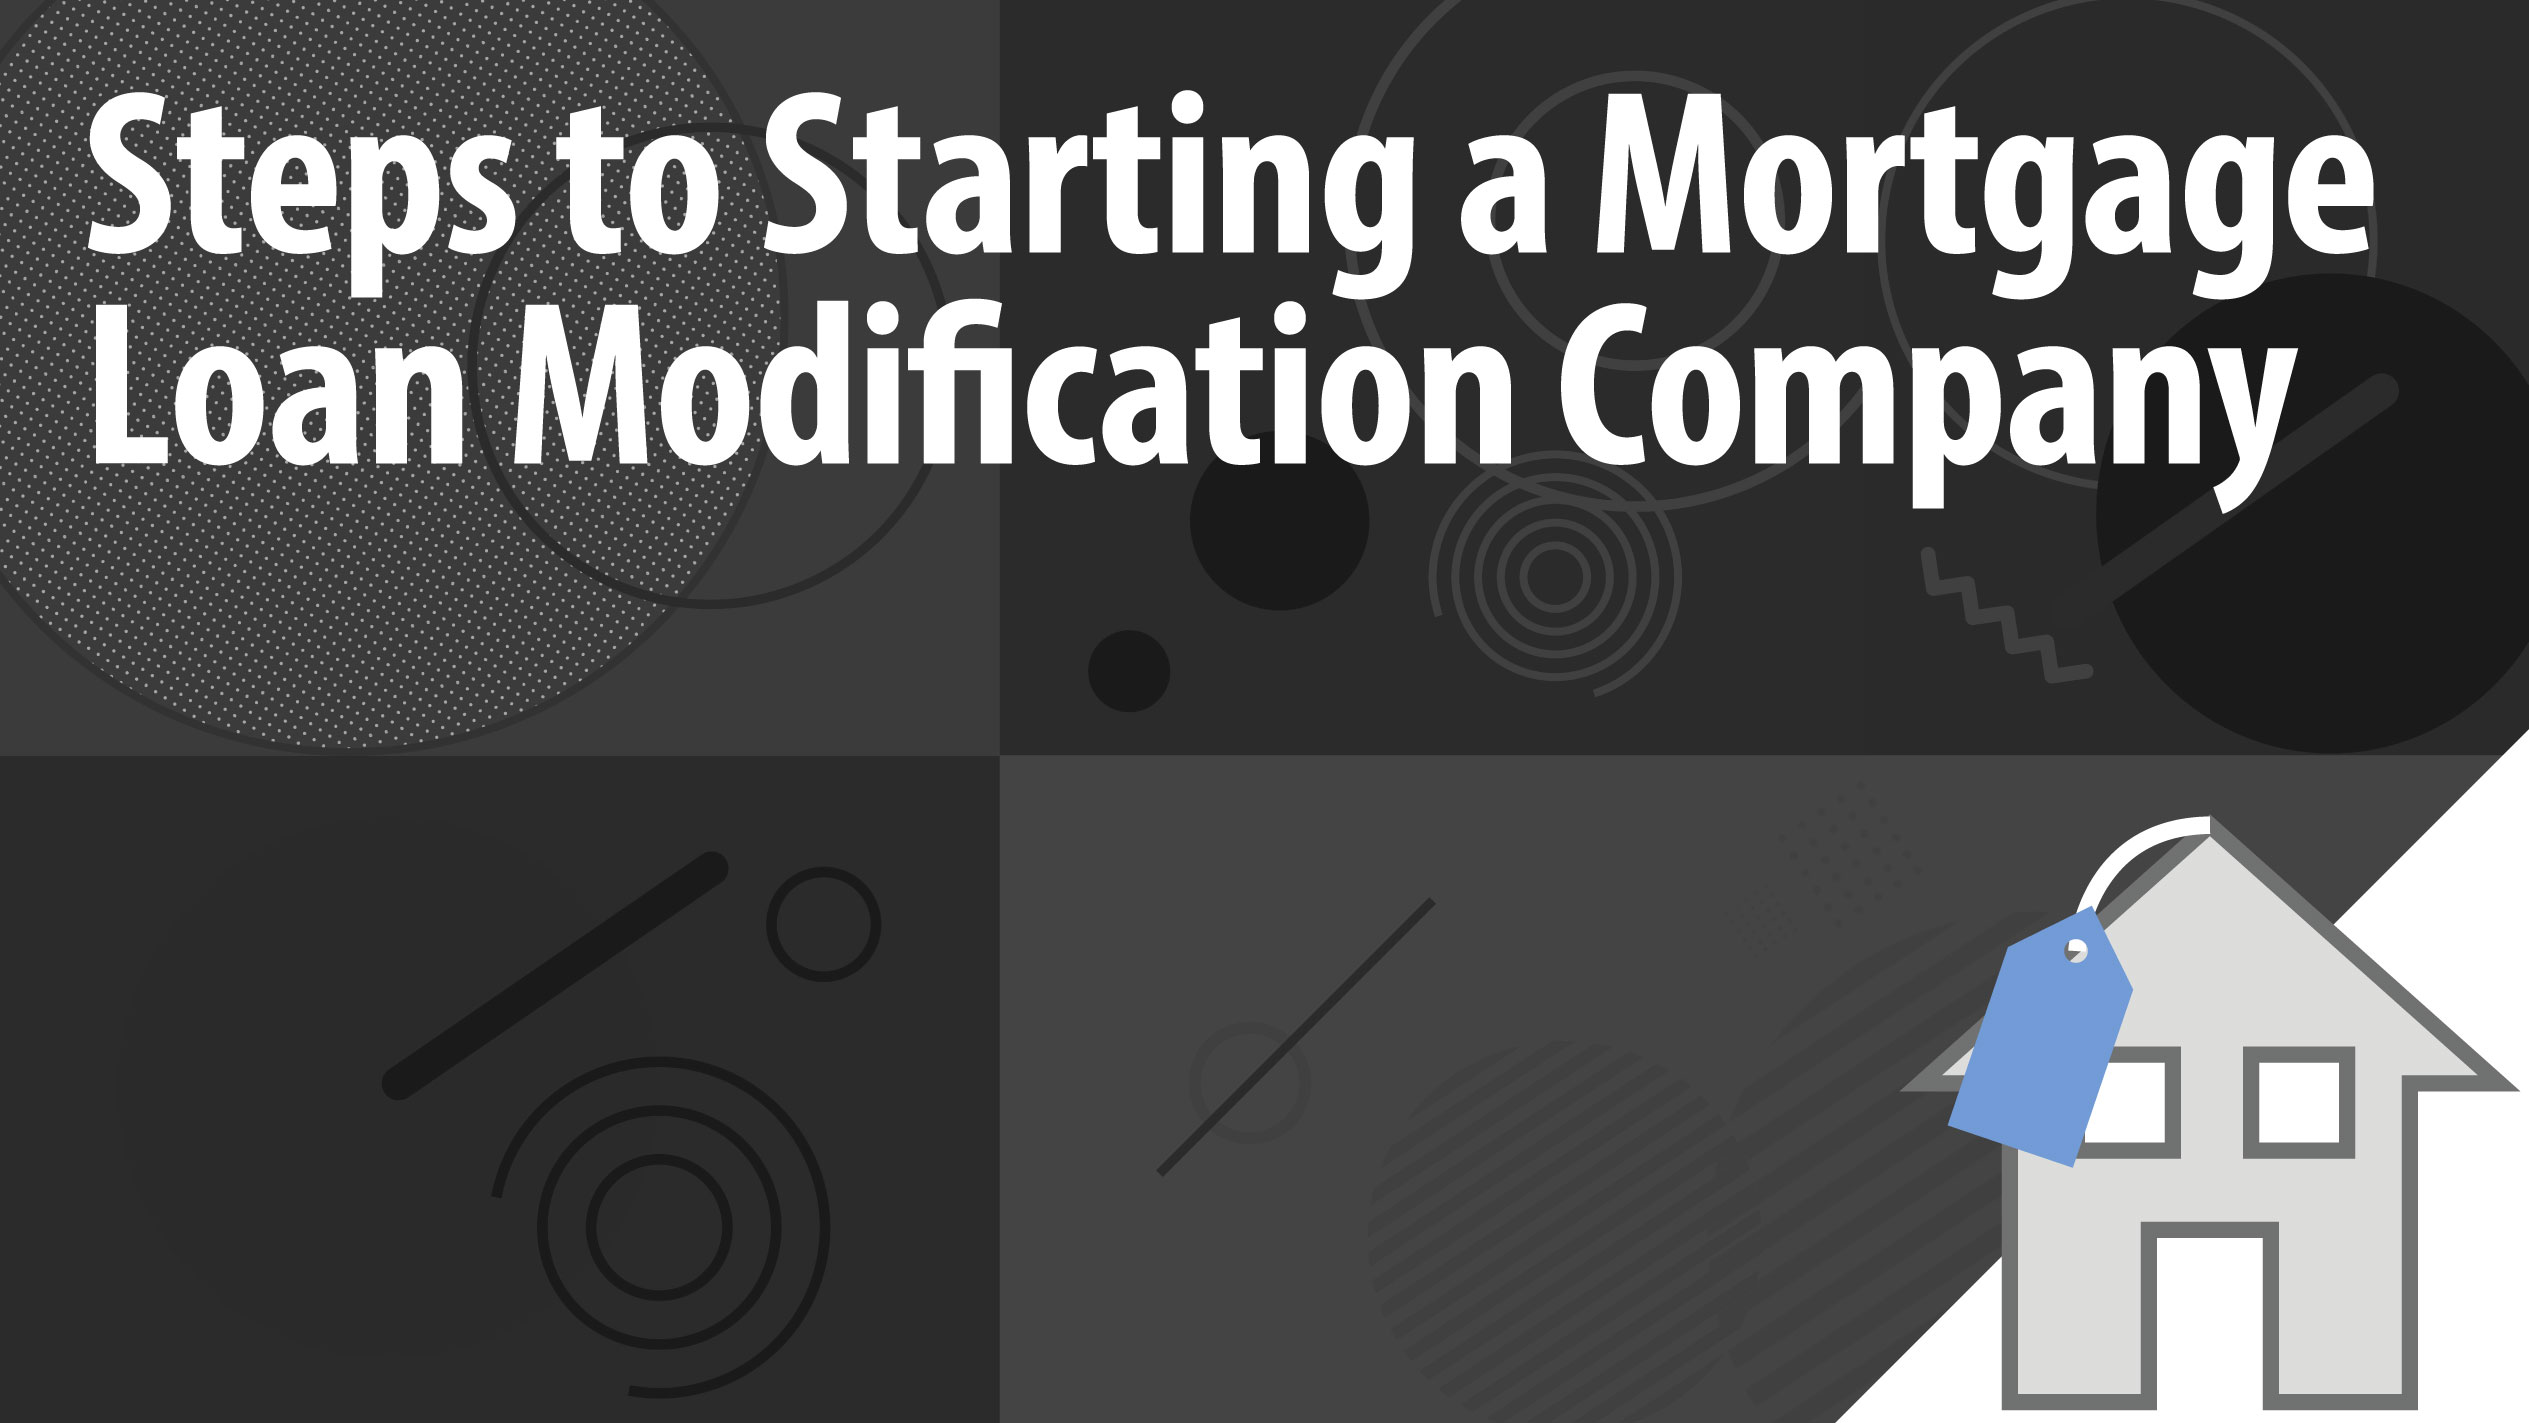 6 Easy Steps to Start Your Own Mortgage Loan Modification Business